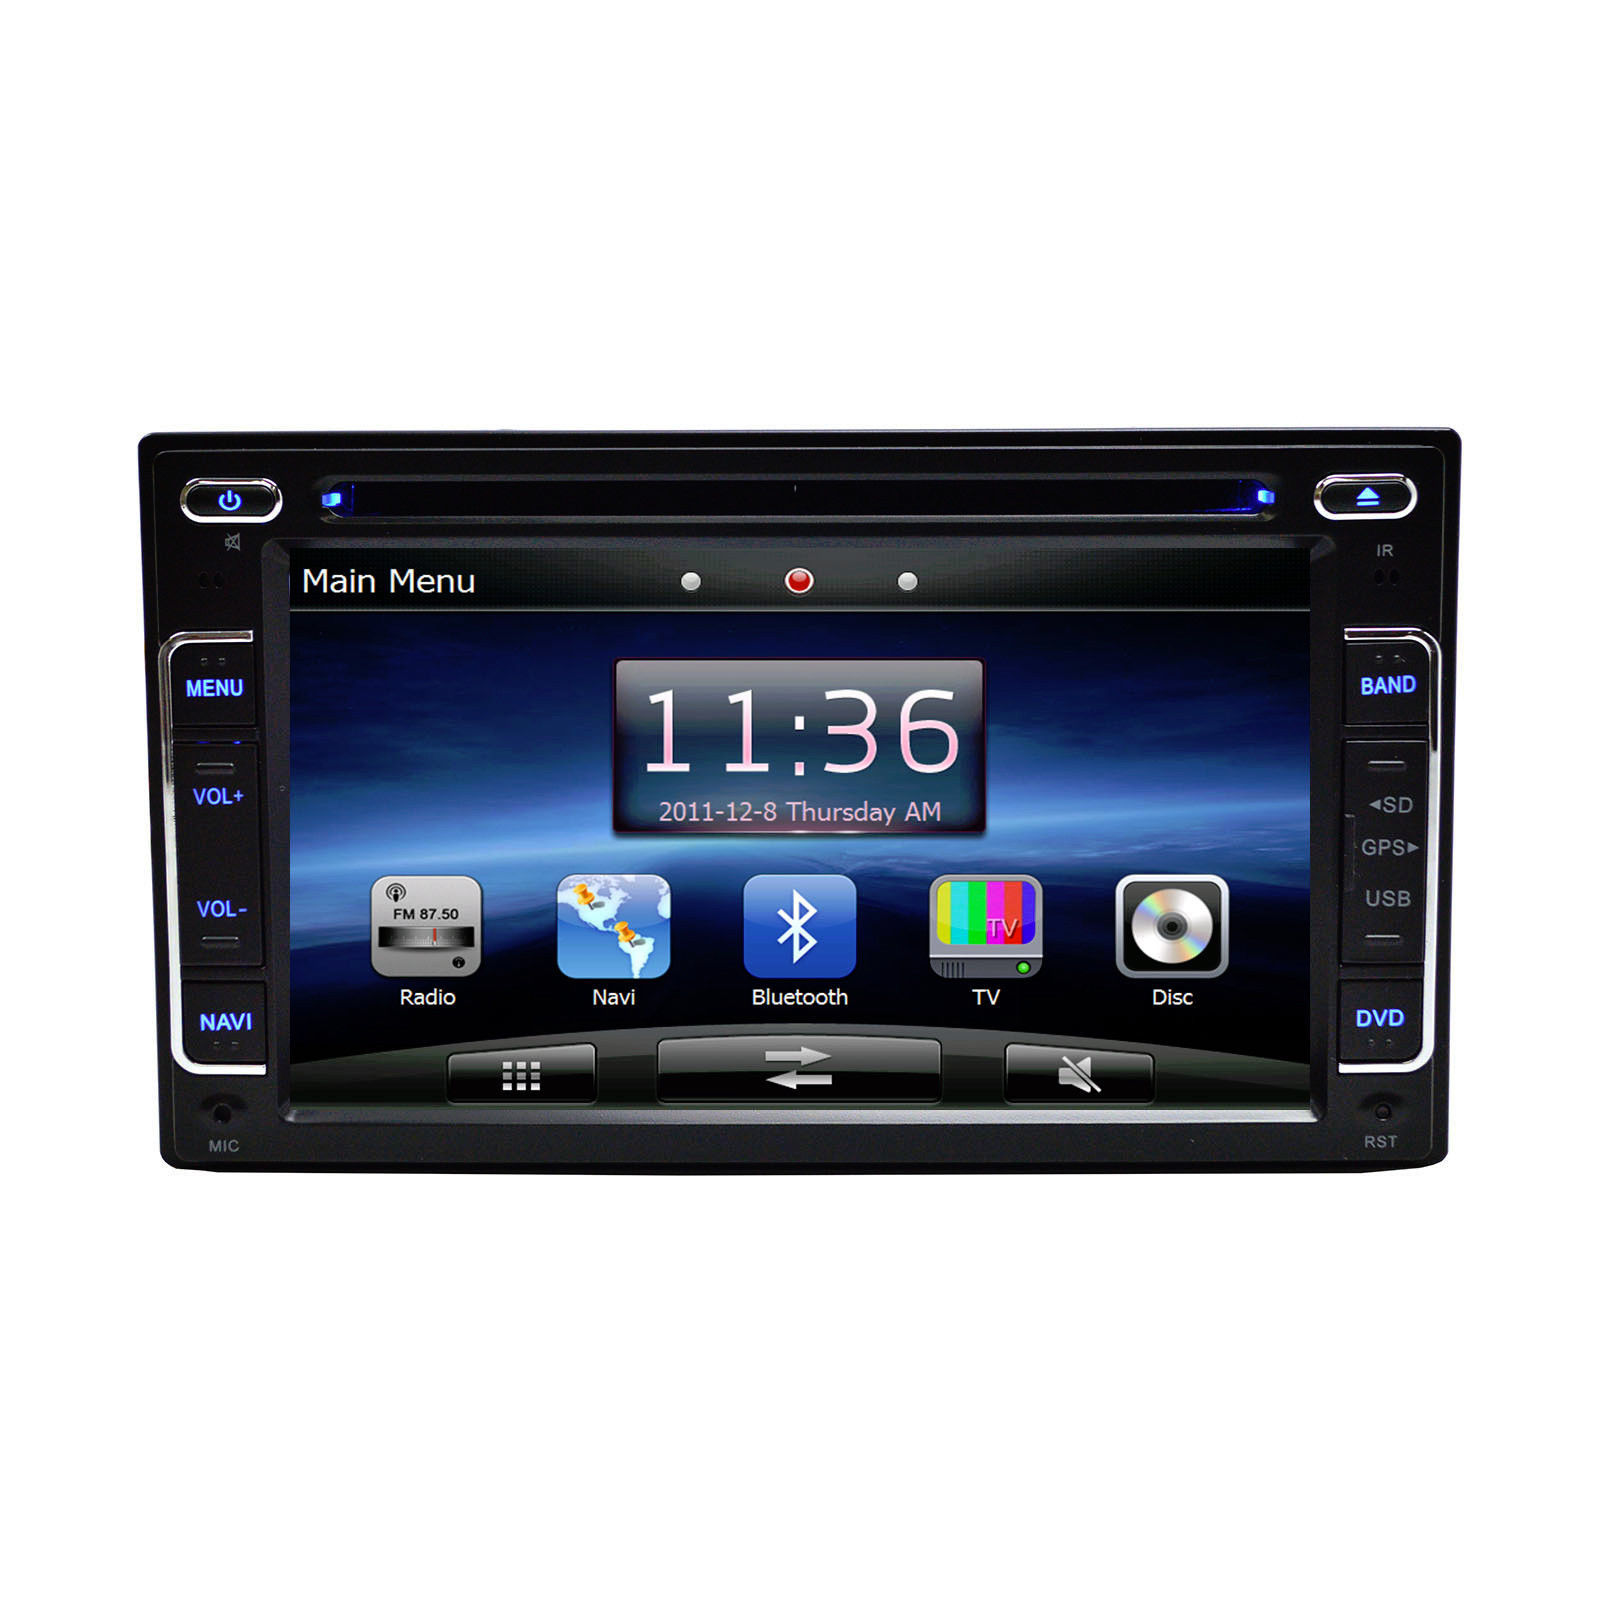 "6.2"" Navigation DVD Multimedia Touchscreen Radio for 2006 Dodge Charger"